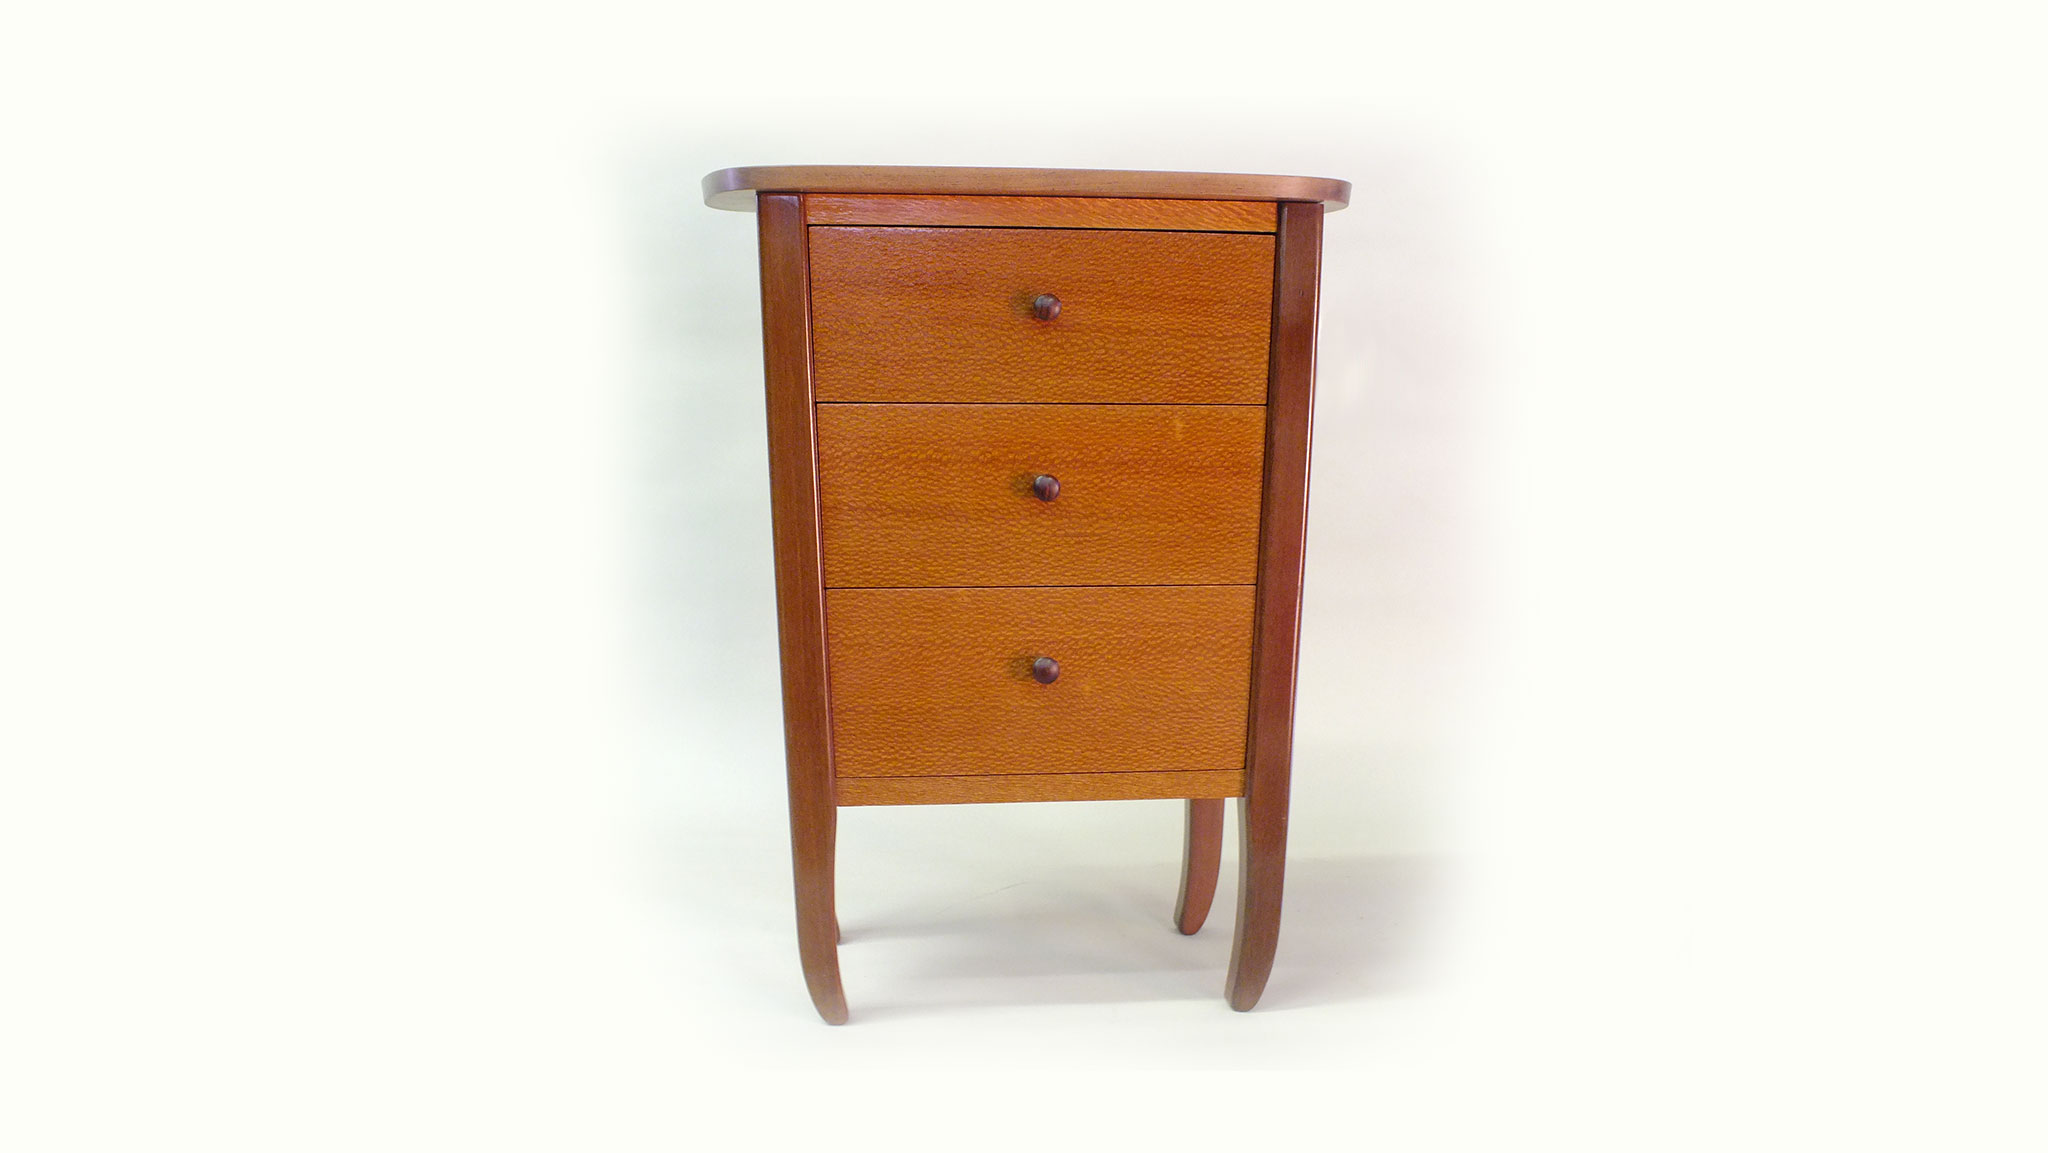 Handcrafted wood furniture by c stuart welch